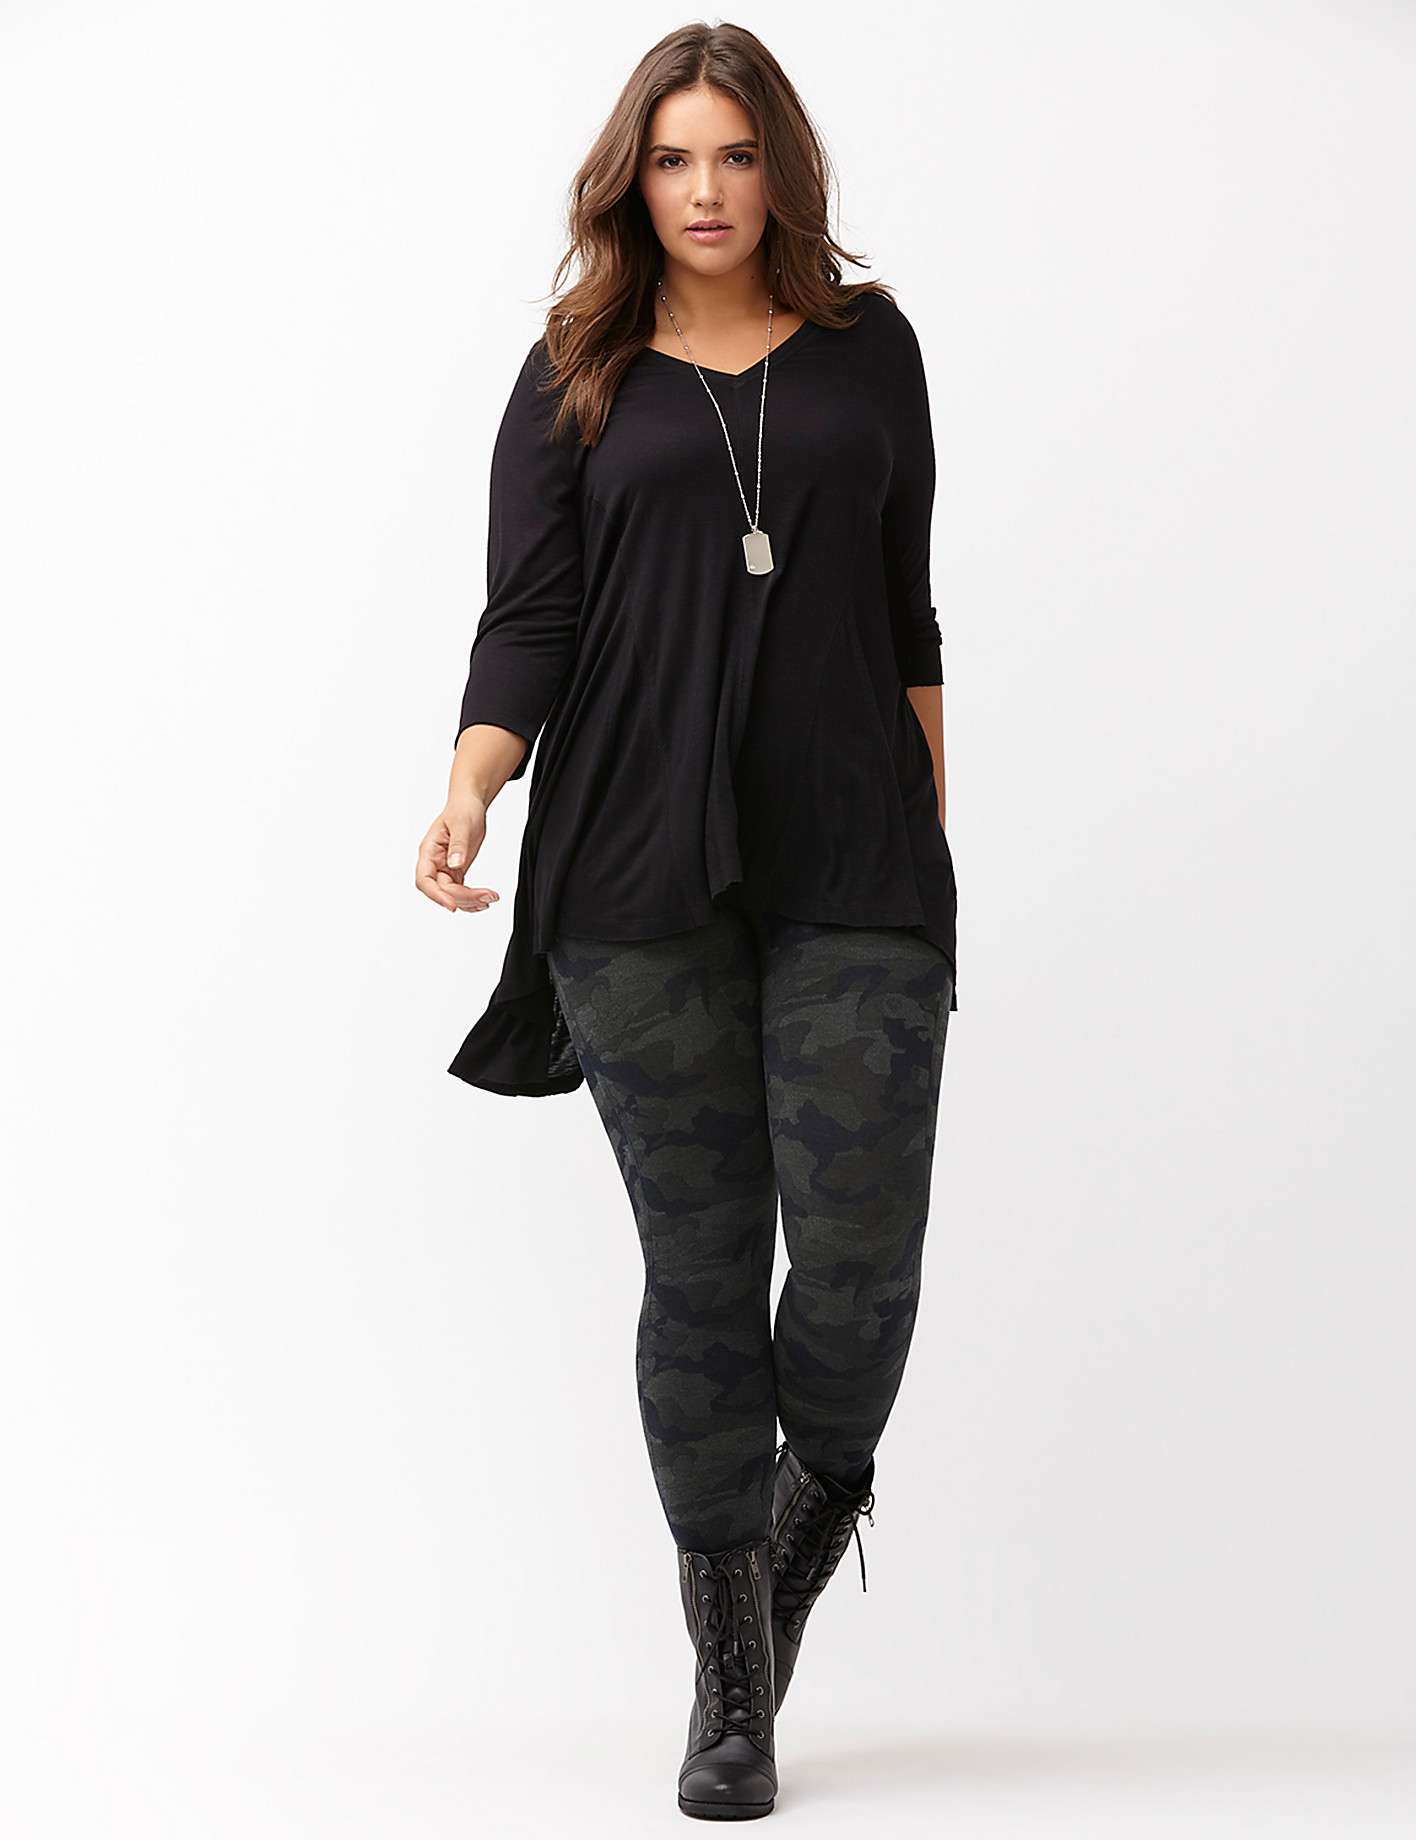 Image result for plus size outfits leggings boots